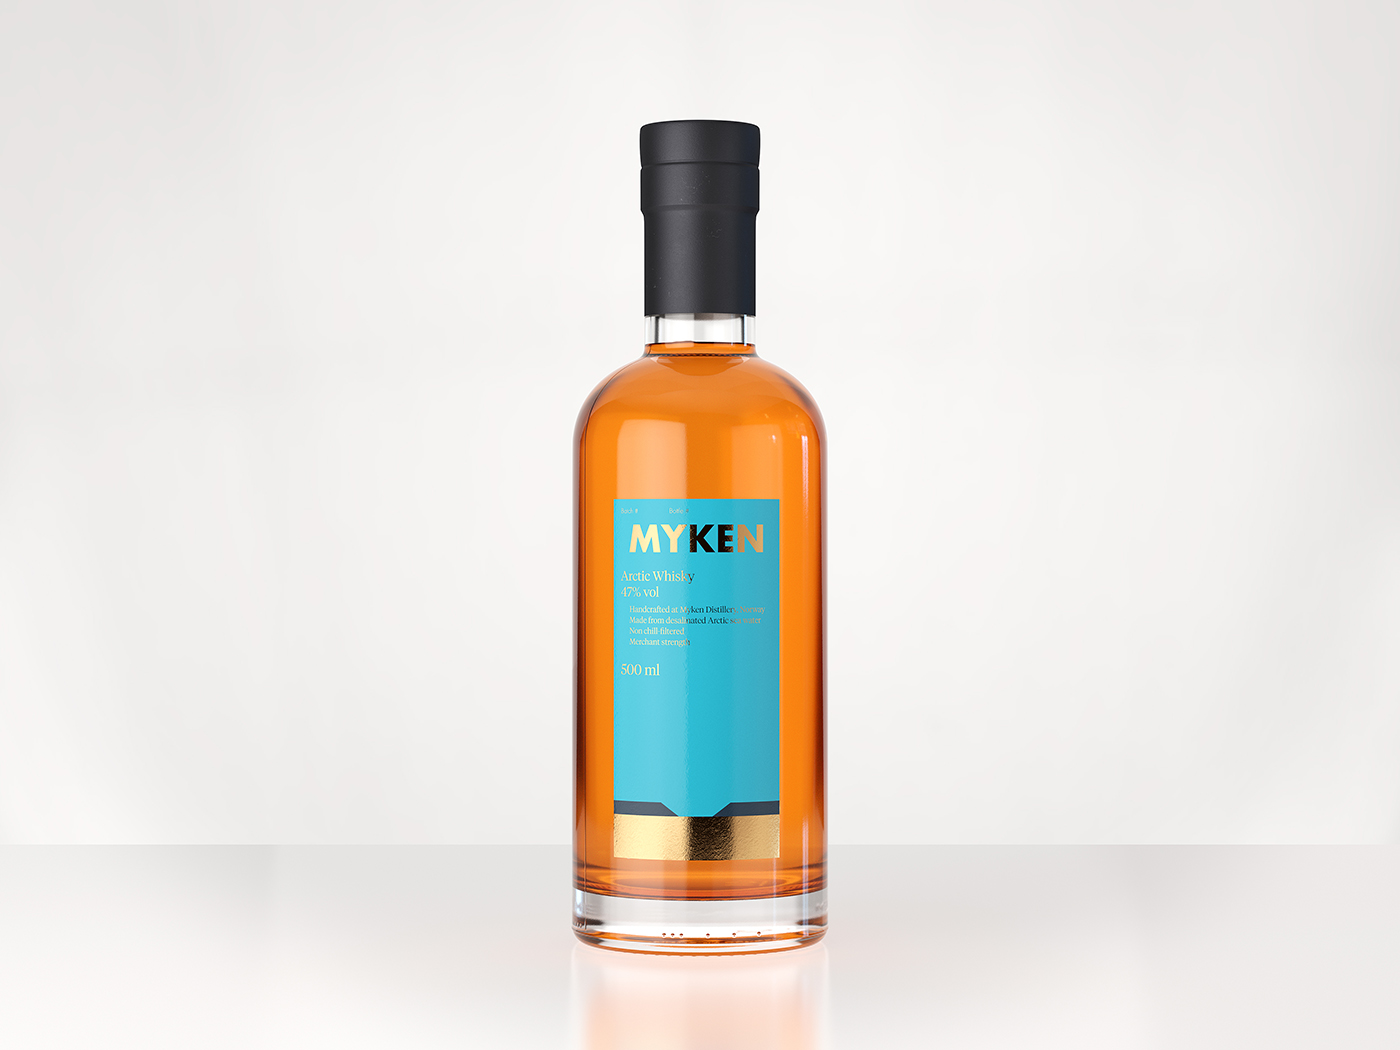 Myken Gin og Whiskey - JHåland for Metric System 3-v2-1400.jpg